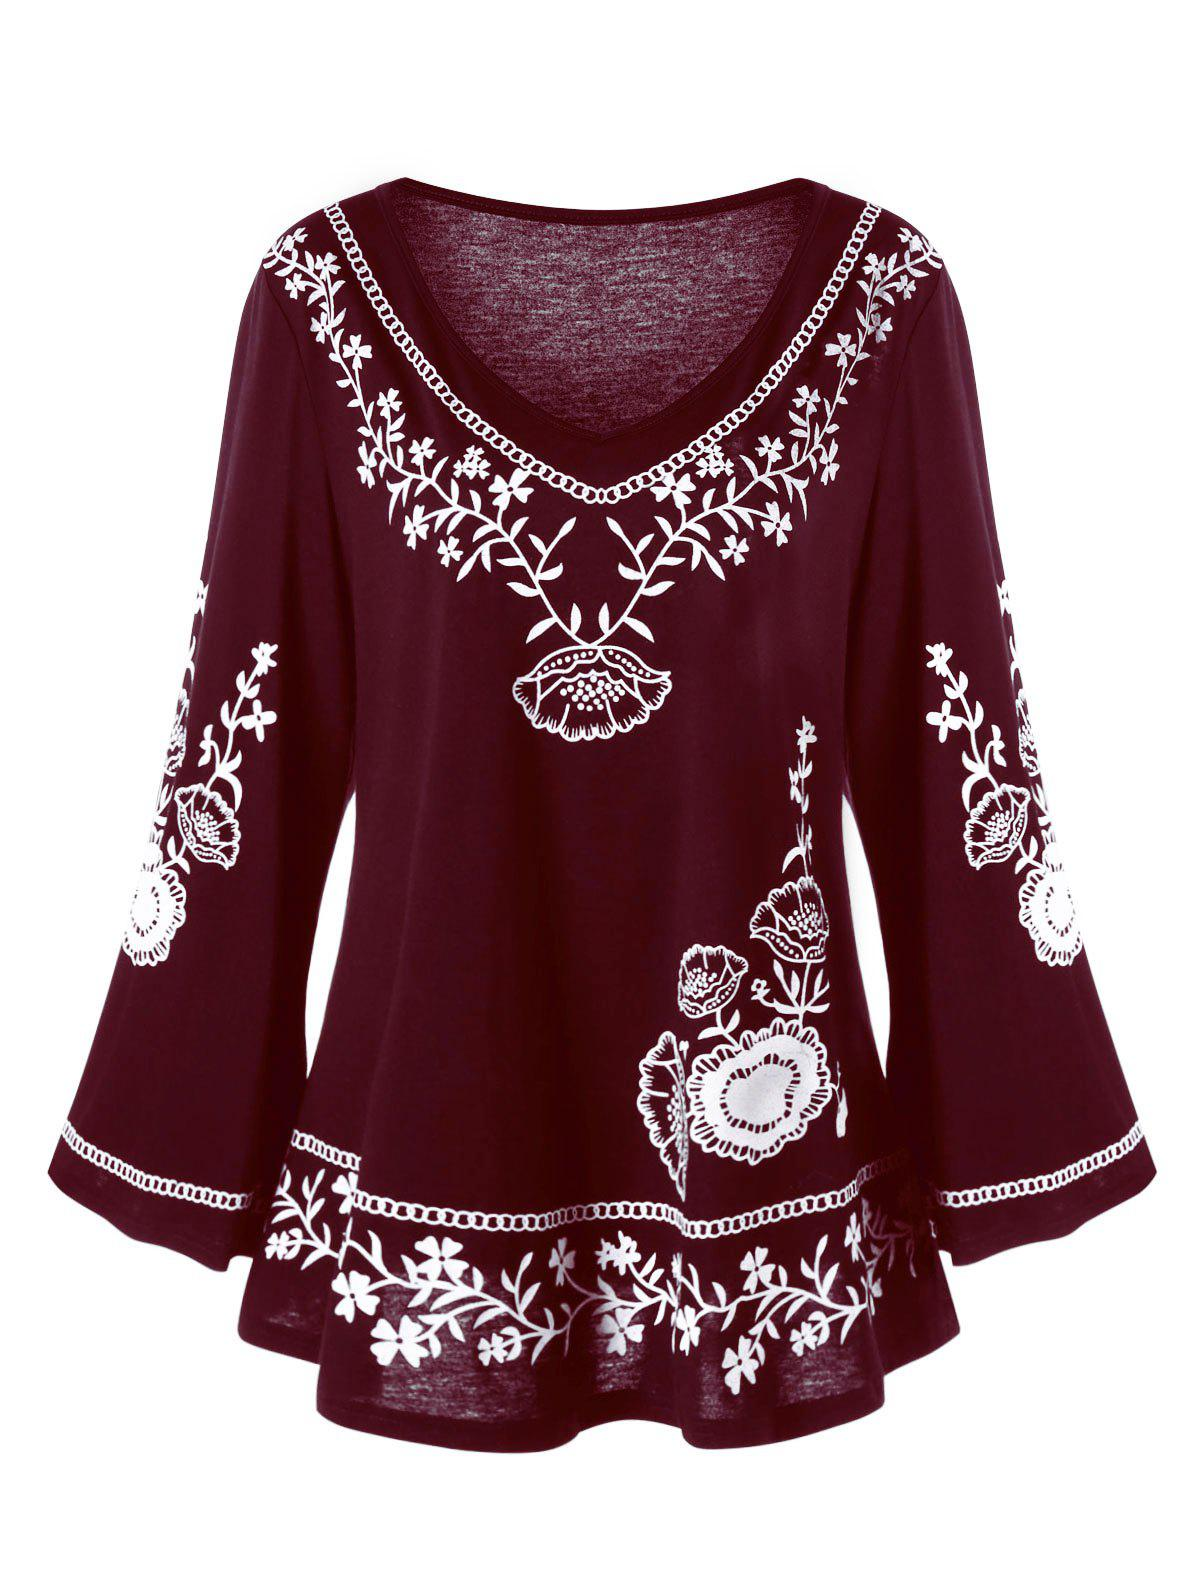 Plus Size Monochrome Floral Bell Sleeve TopWOMEN<br><br>Size: 3XL; Color: DARK RED; Material: Polyester,Spandex; Shirt Length: Long; Sleeve Length: Full; Collar: V-Neck; Style: Casual; Season: Fall,Spring; Pattern Type: Floral; Weight: 0.3100kg; Package Contents: 1 x Top;